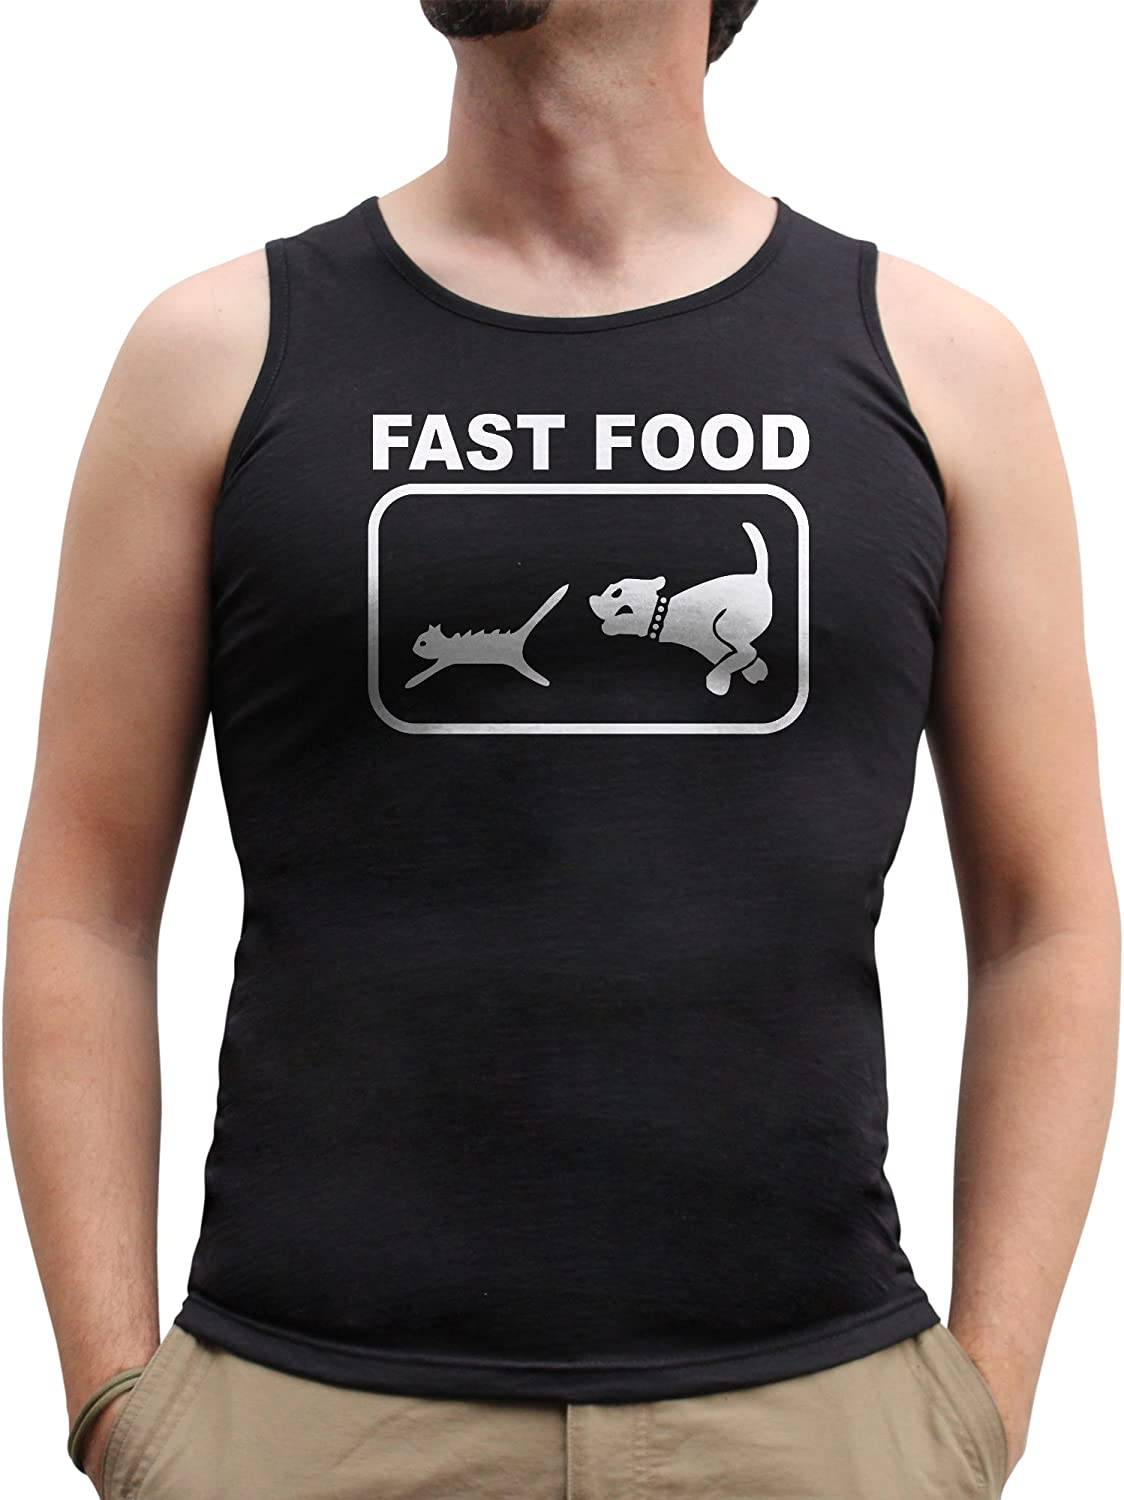 Nutees Mens Fast Food Dog Chasing Cat Funny Tank Top Vest